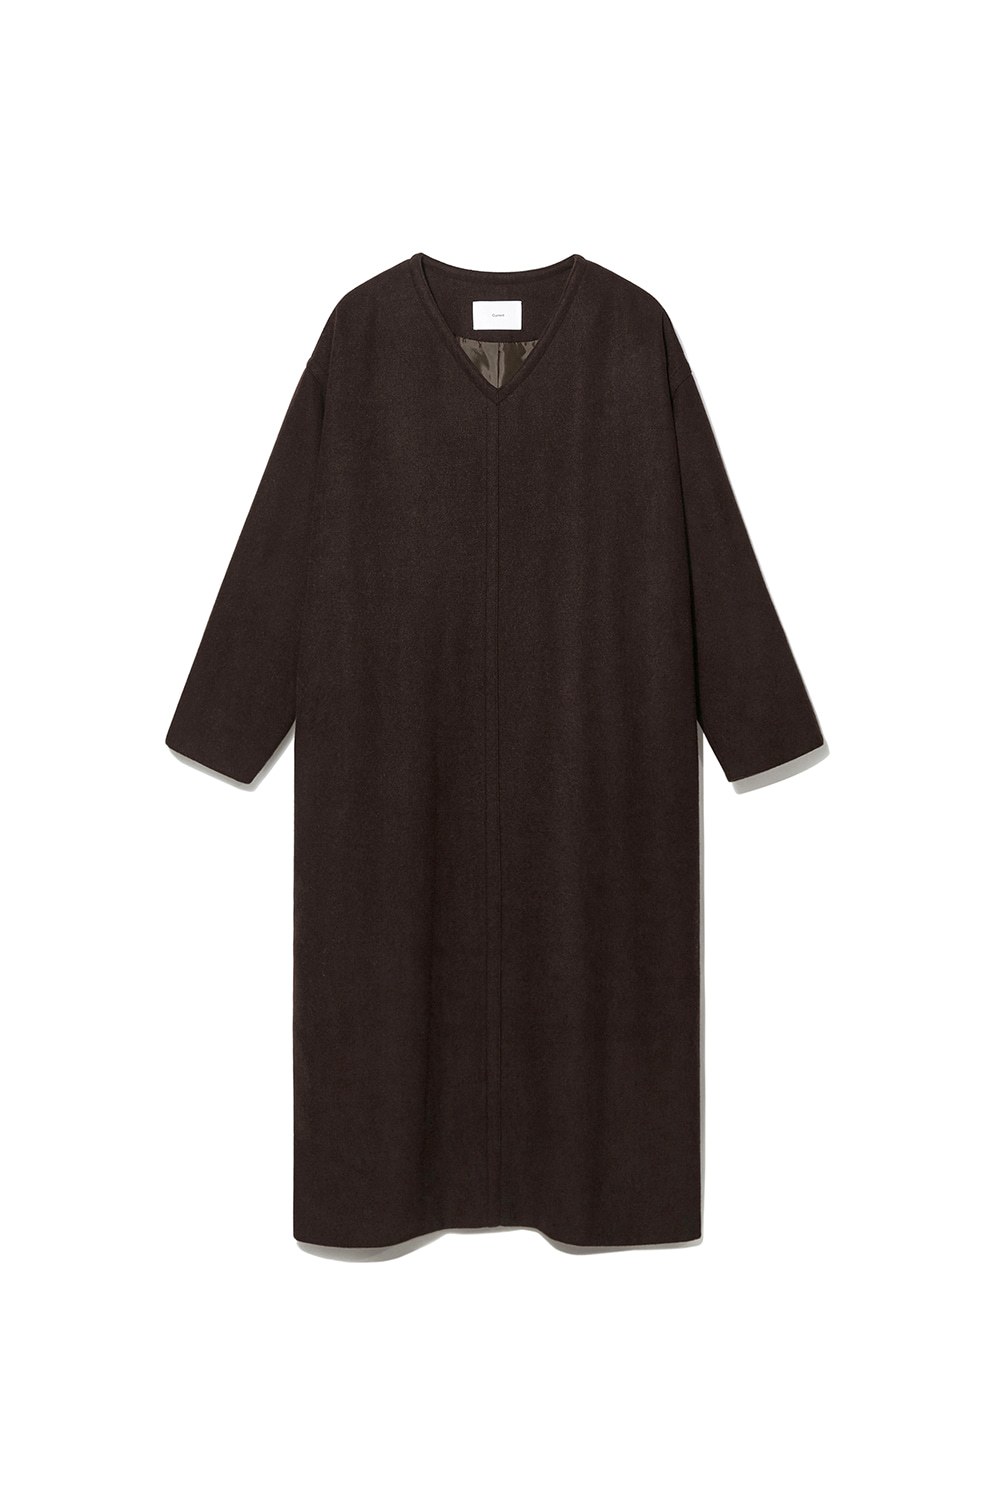 Wool Over Dress Women JA [Brown]